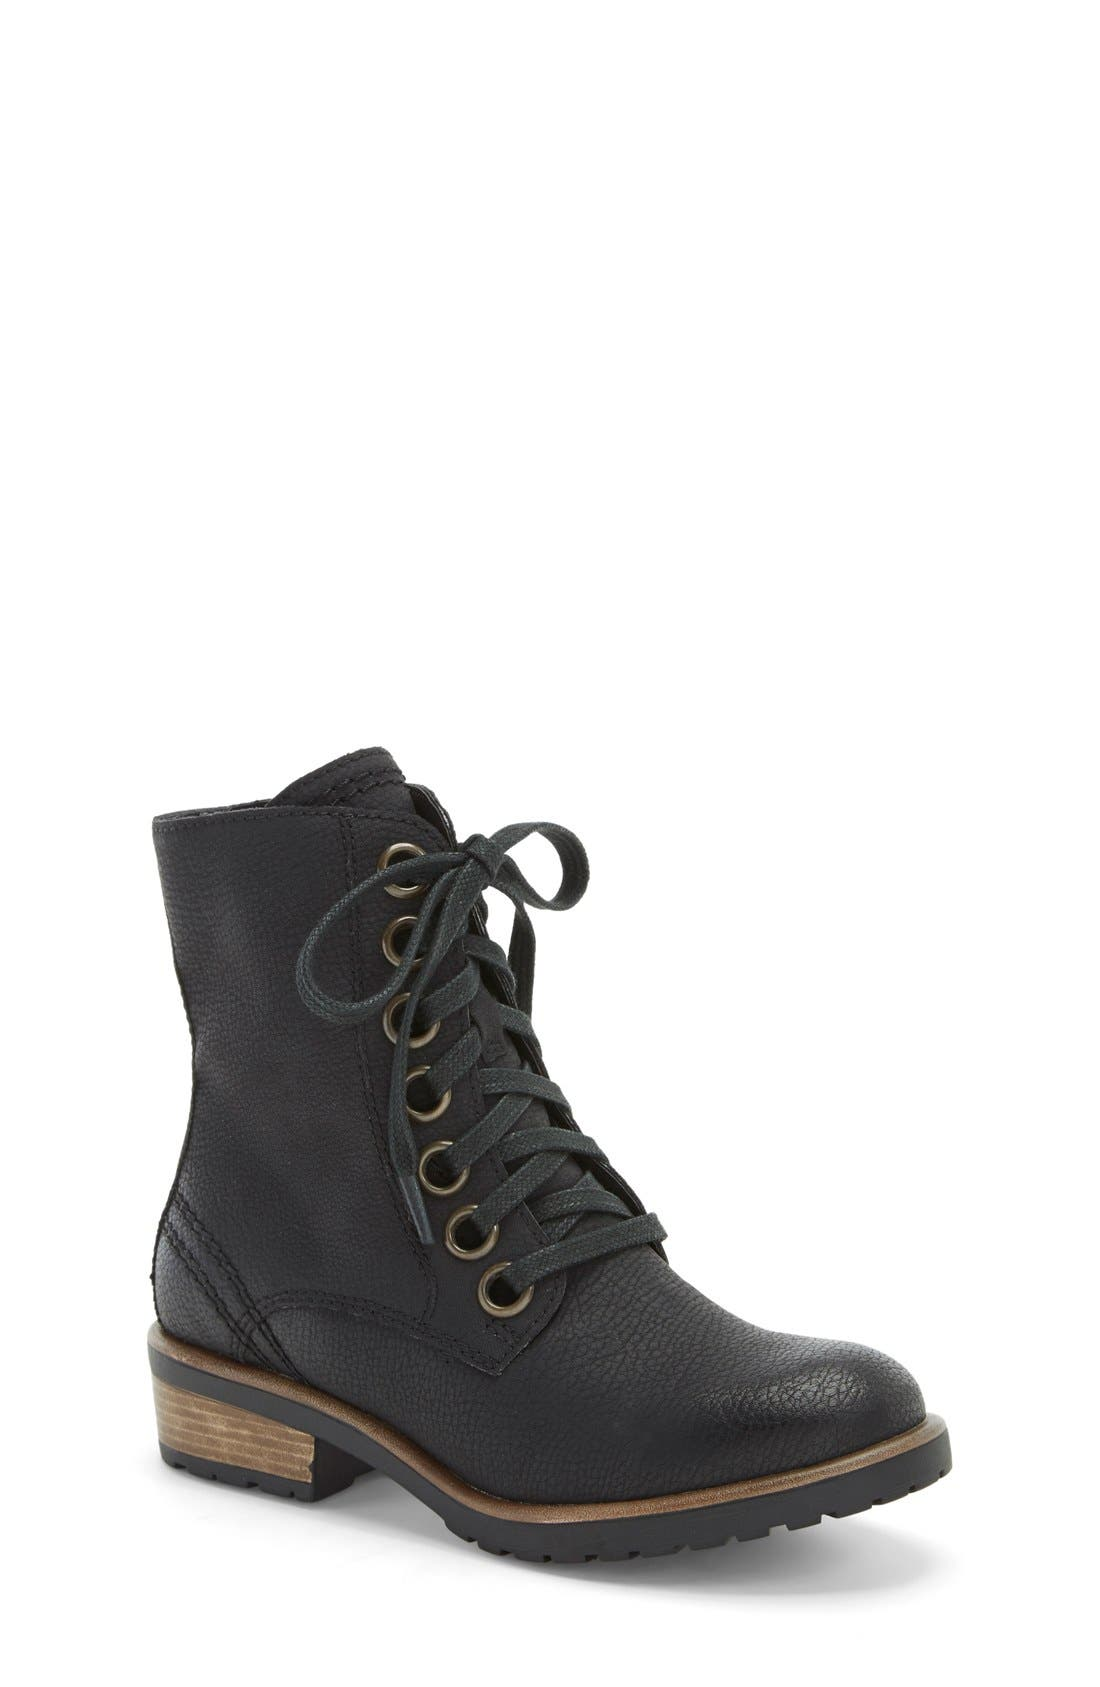 Tucker + Tate 'Amsterdam' Lace Up Boot (Toddler, Little Kid & Big Kid)